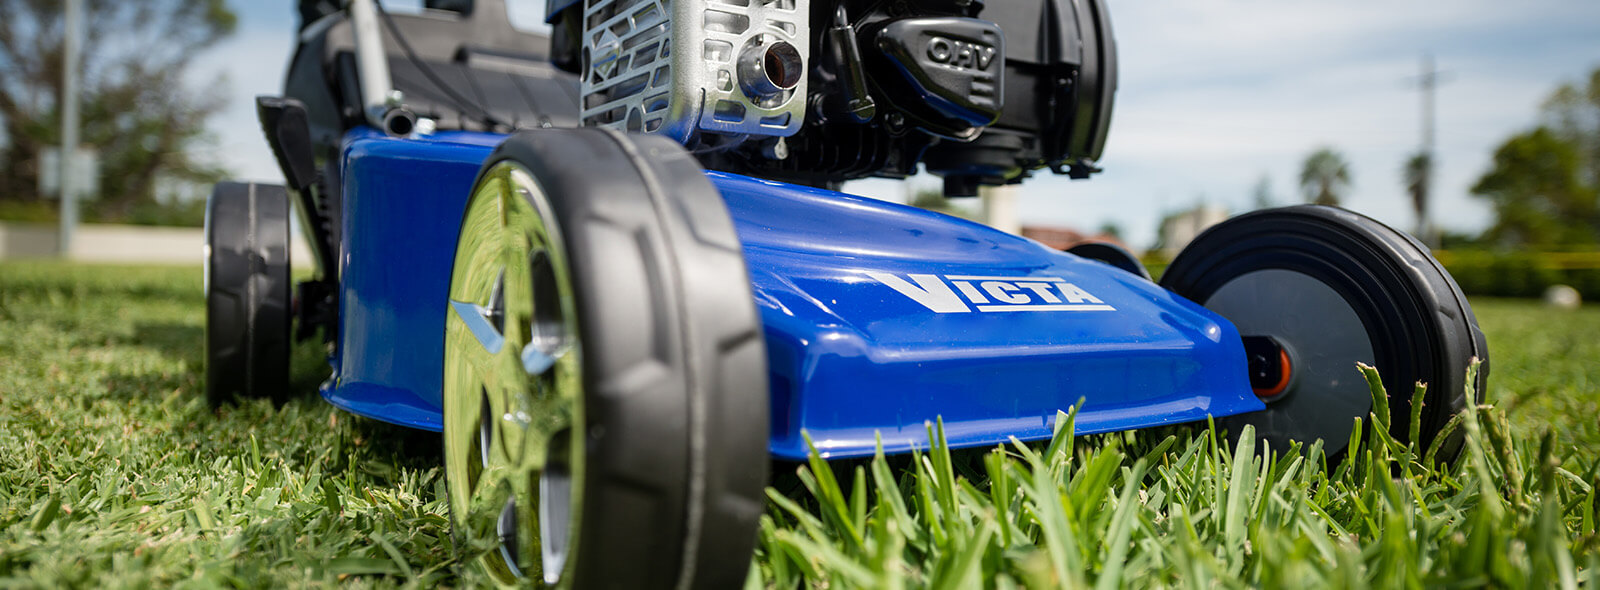 Victa's Domestic Range of Outdoor Power Equipment